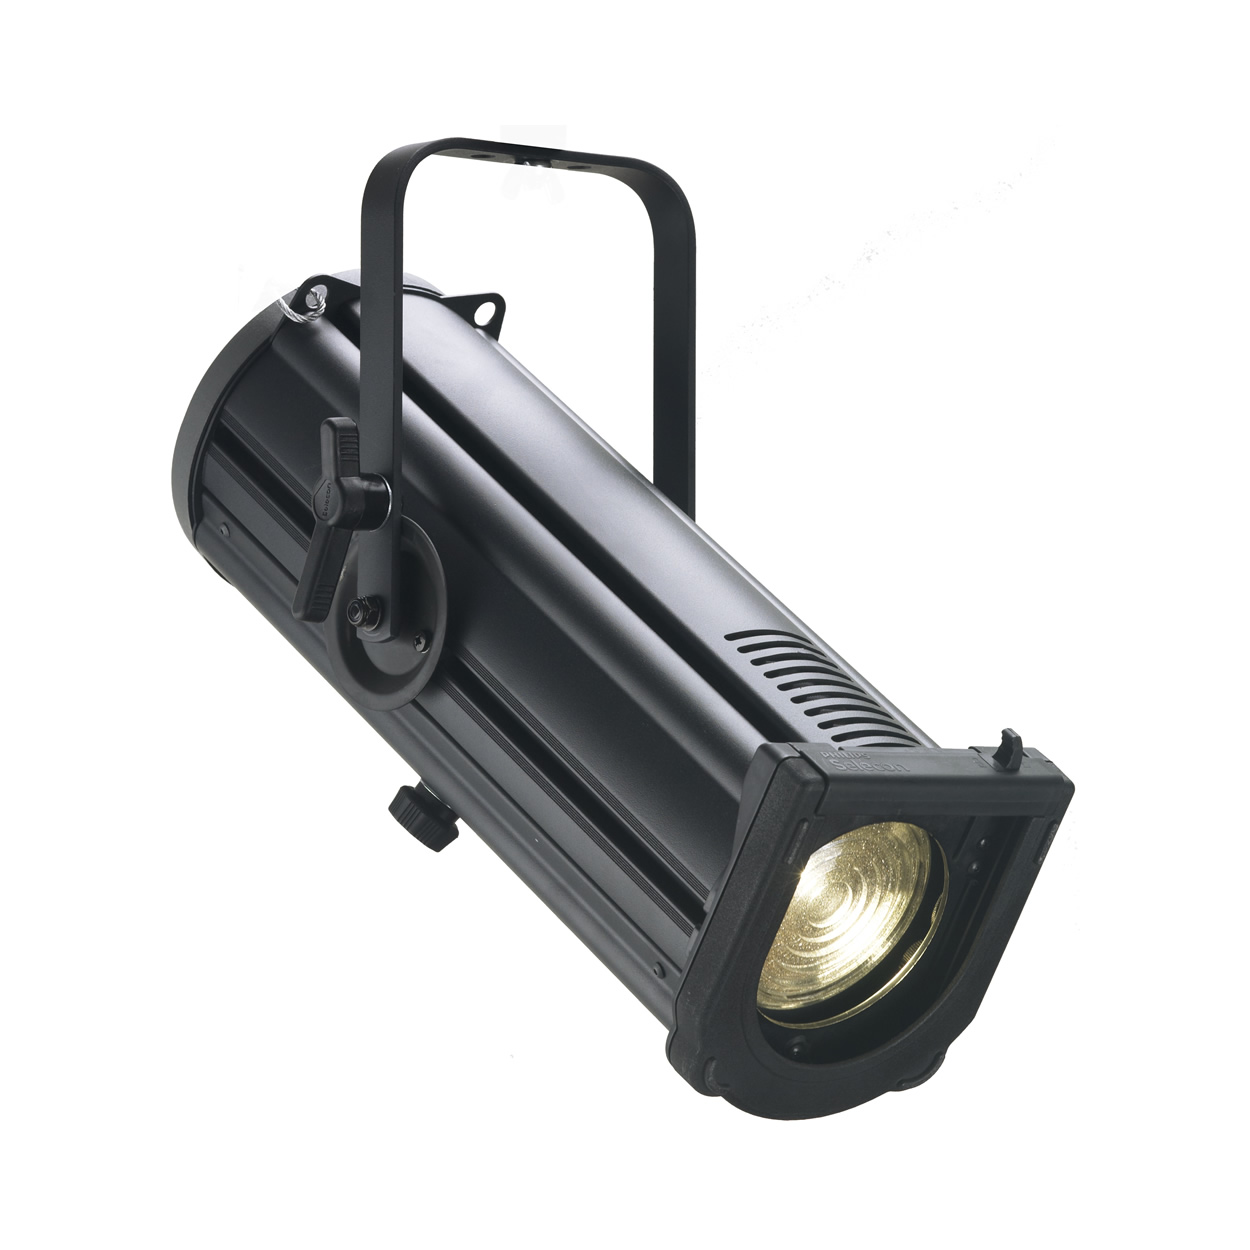 Philips selecon plfresnel1 mkii led luminaire lightmoves for Luminaire exterieur led philips